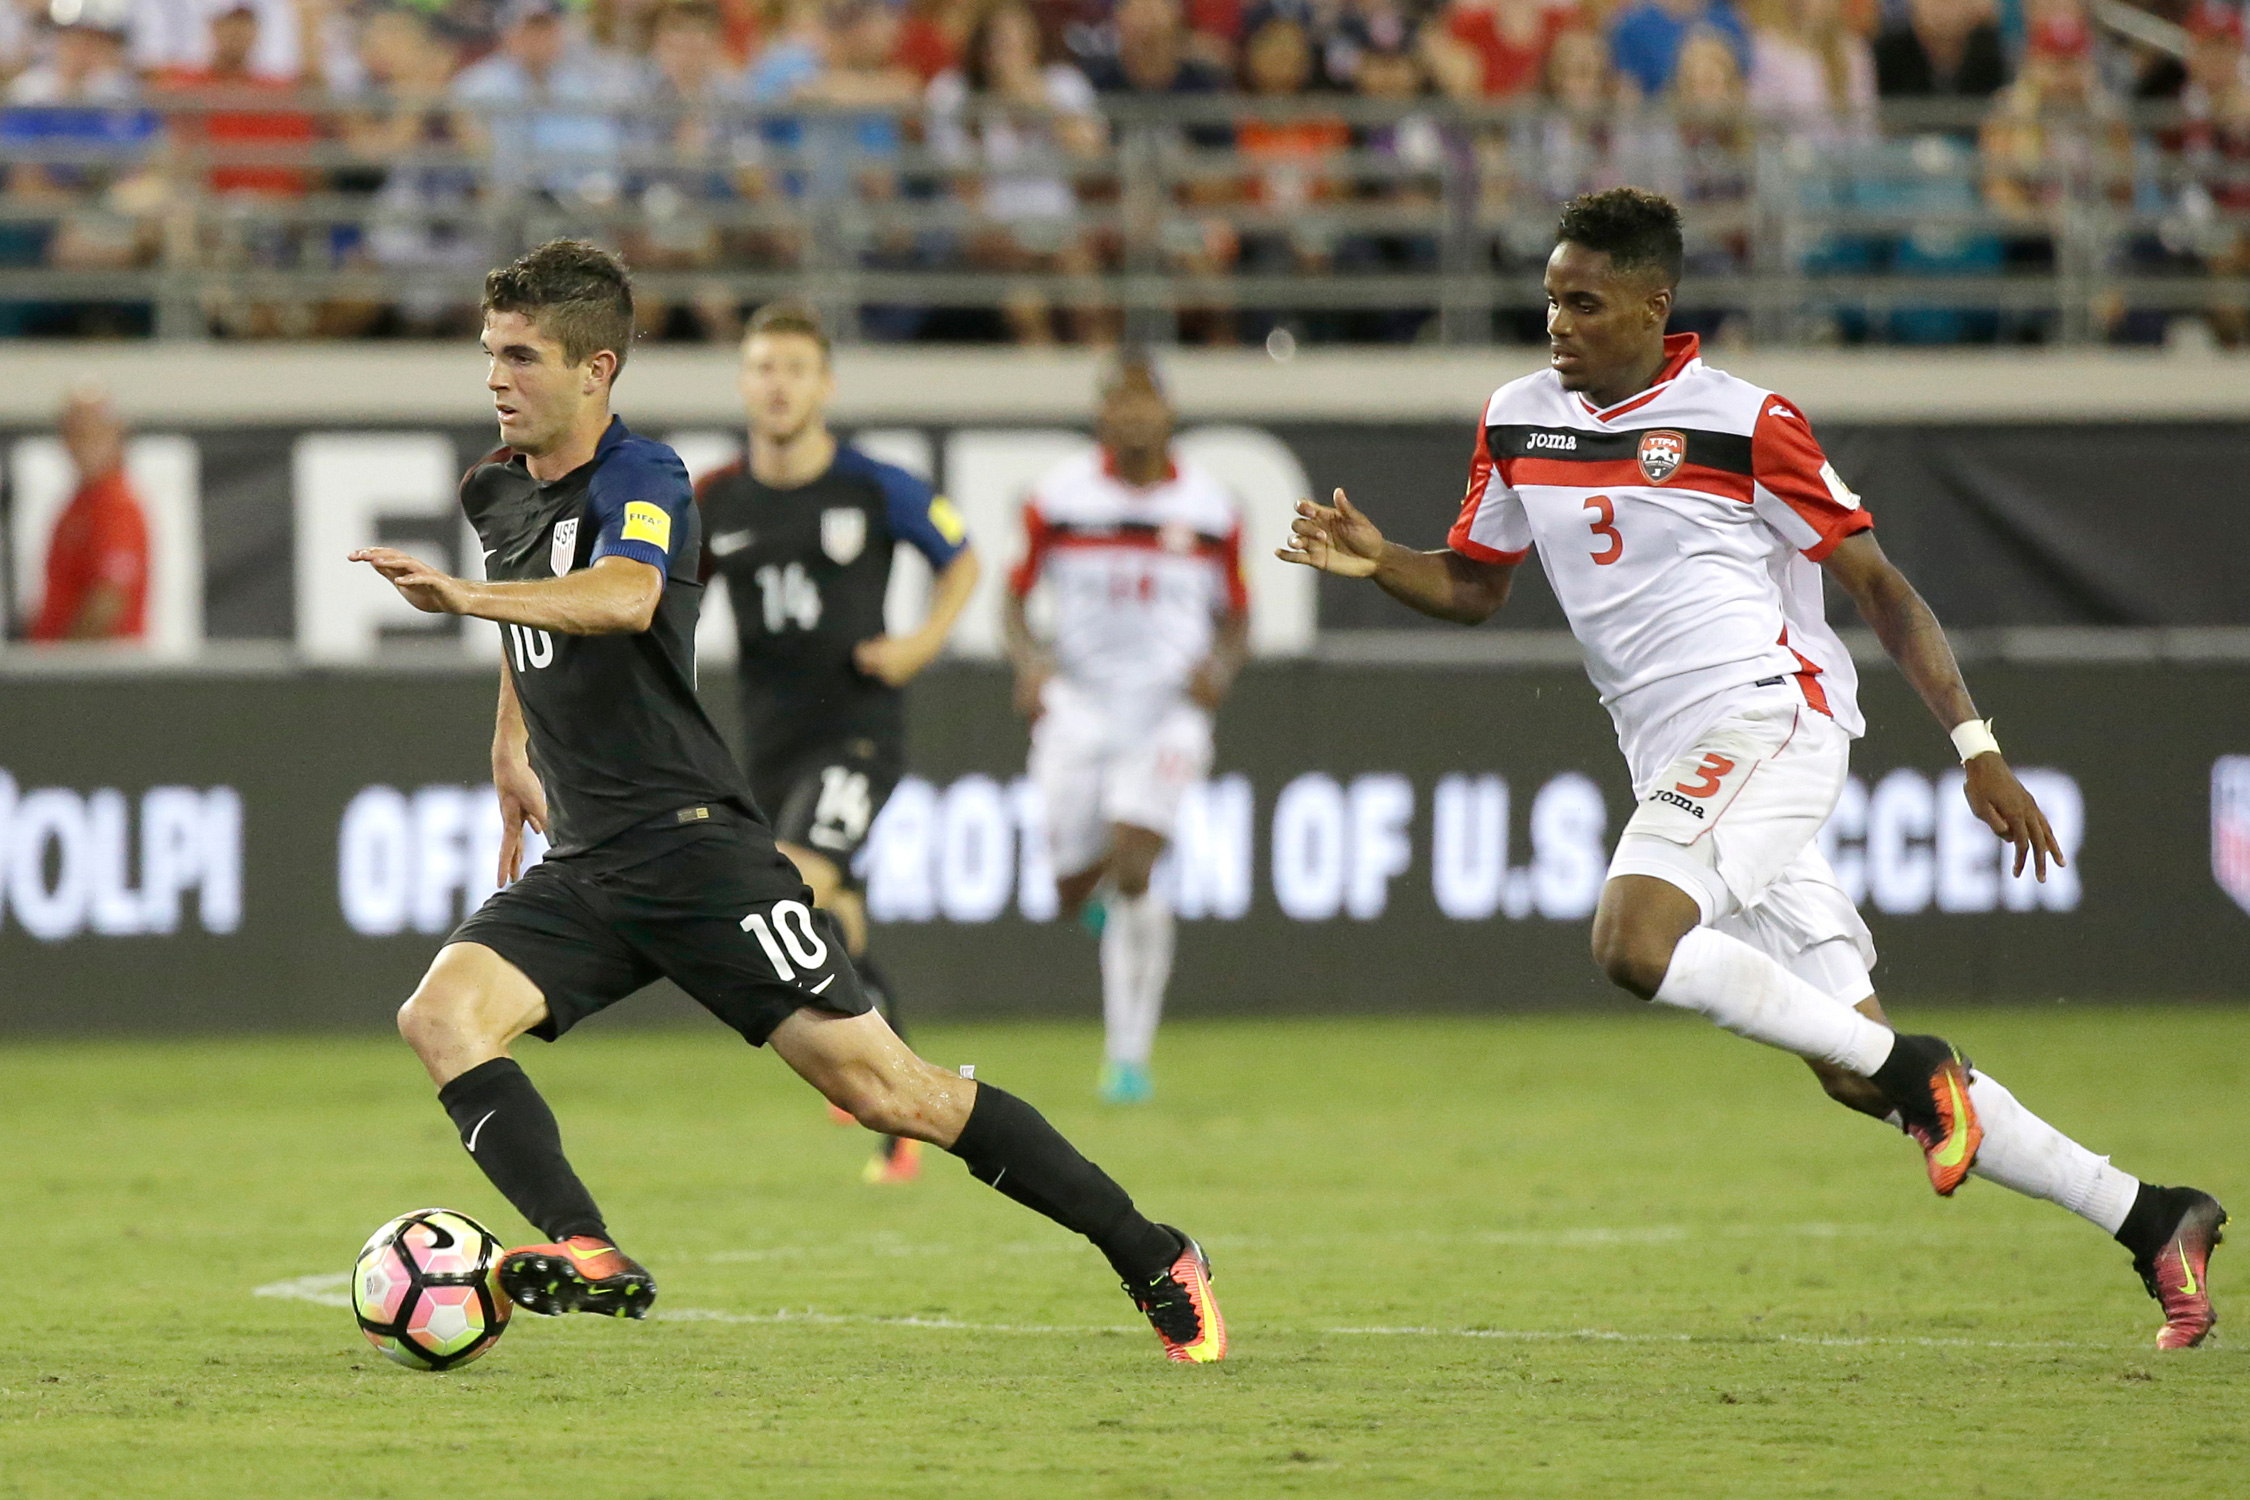 Christian Pulisic blows by Joevin Jones in the USA's 4-0 World Cup qualifying win over Trinidad and Tobago on Sept. 6, 2016, in which he assisted on a goal scored by Jozy Altidore.